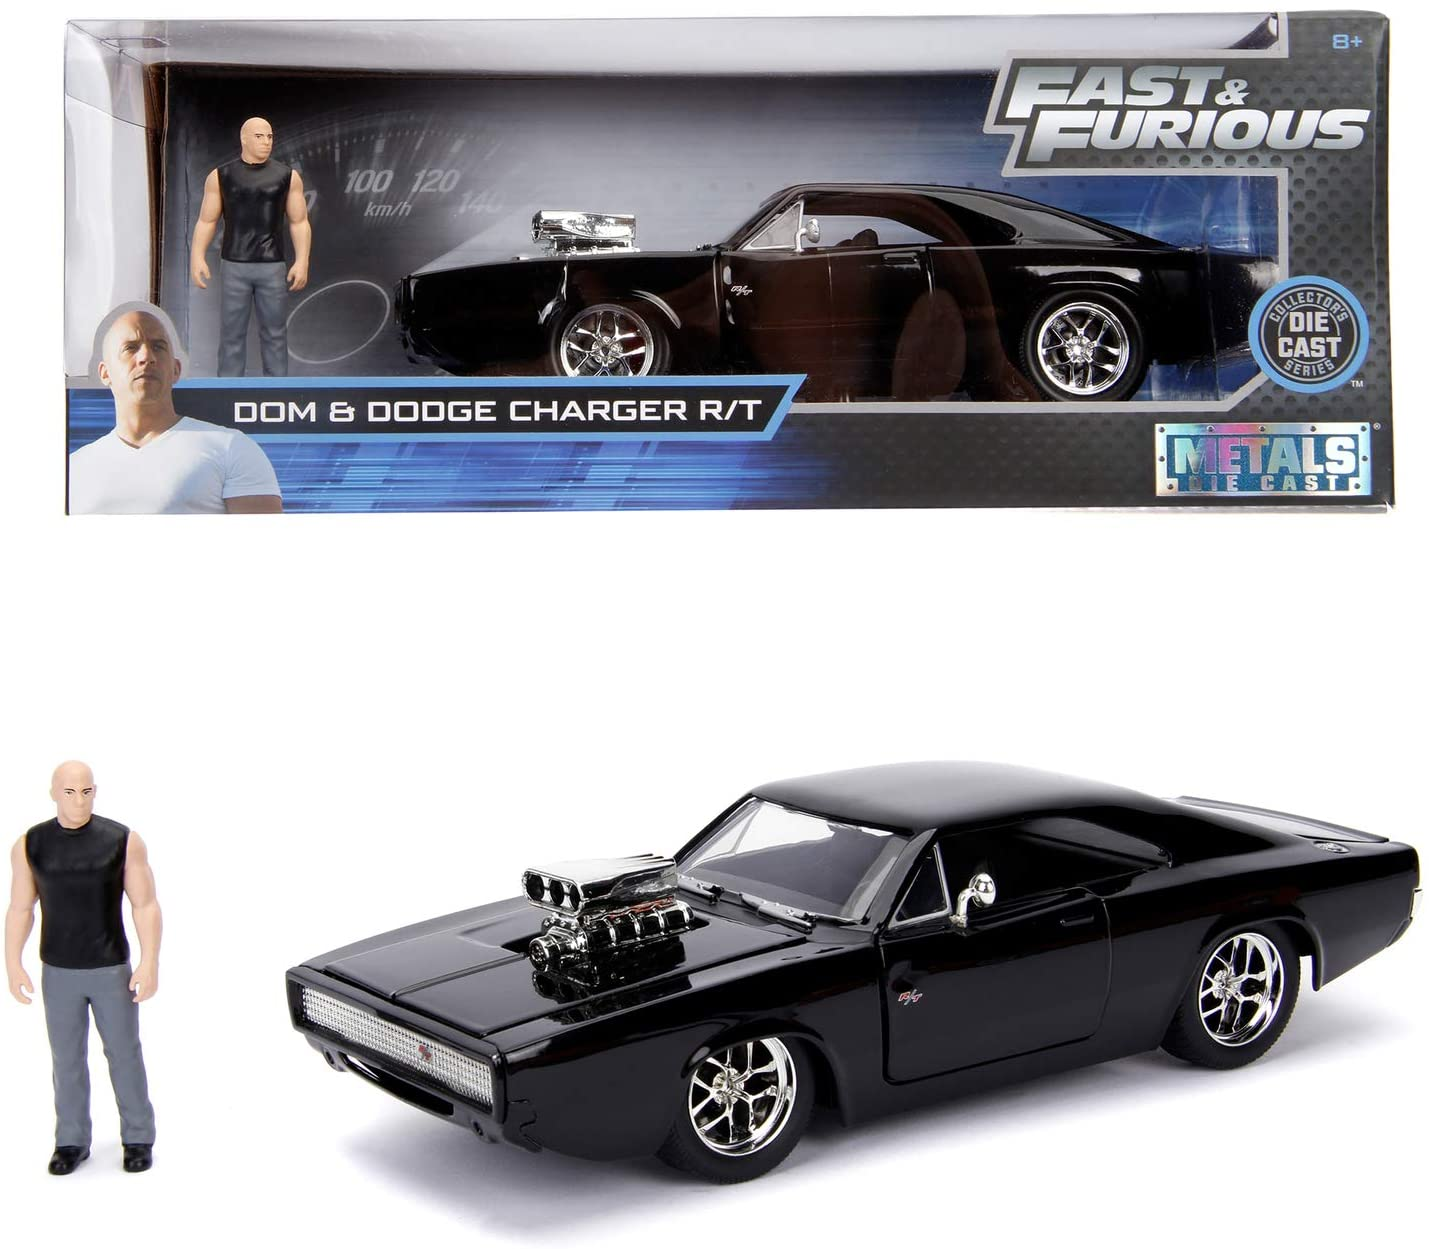 Jada Toys Fast Furious 1970 Dodge Charger Street 1 24 Toy Car Incl Dominic Toretto Figurine To Open Doors Boot Removable Bonnet Black Buy Online At Best Prices In Pakistan Daraz Pk